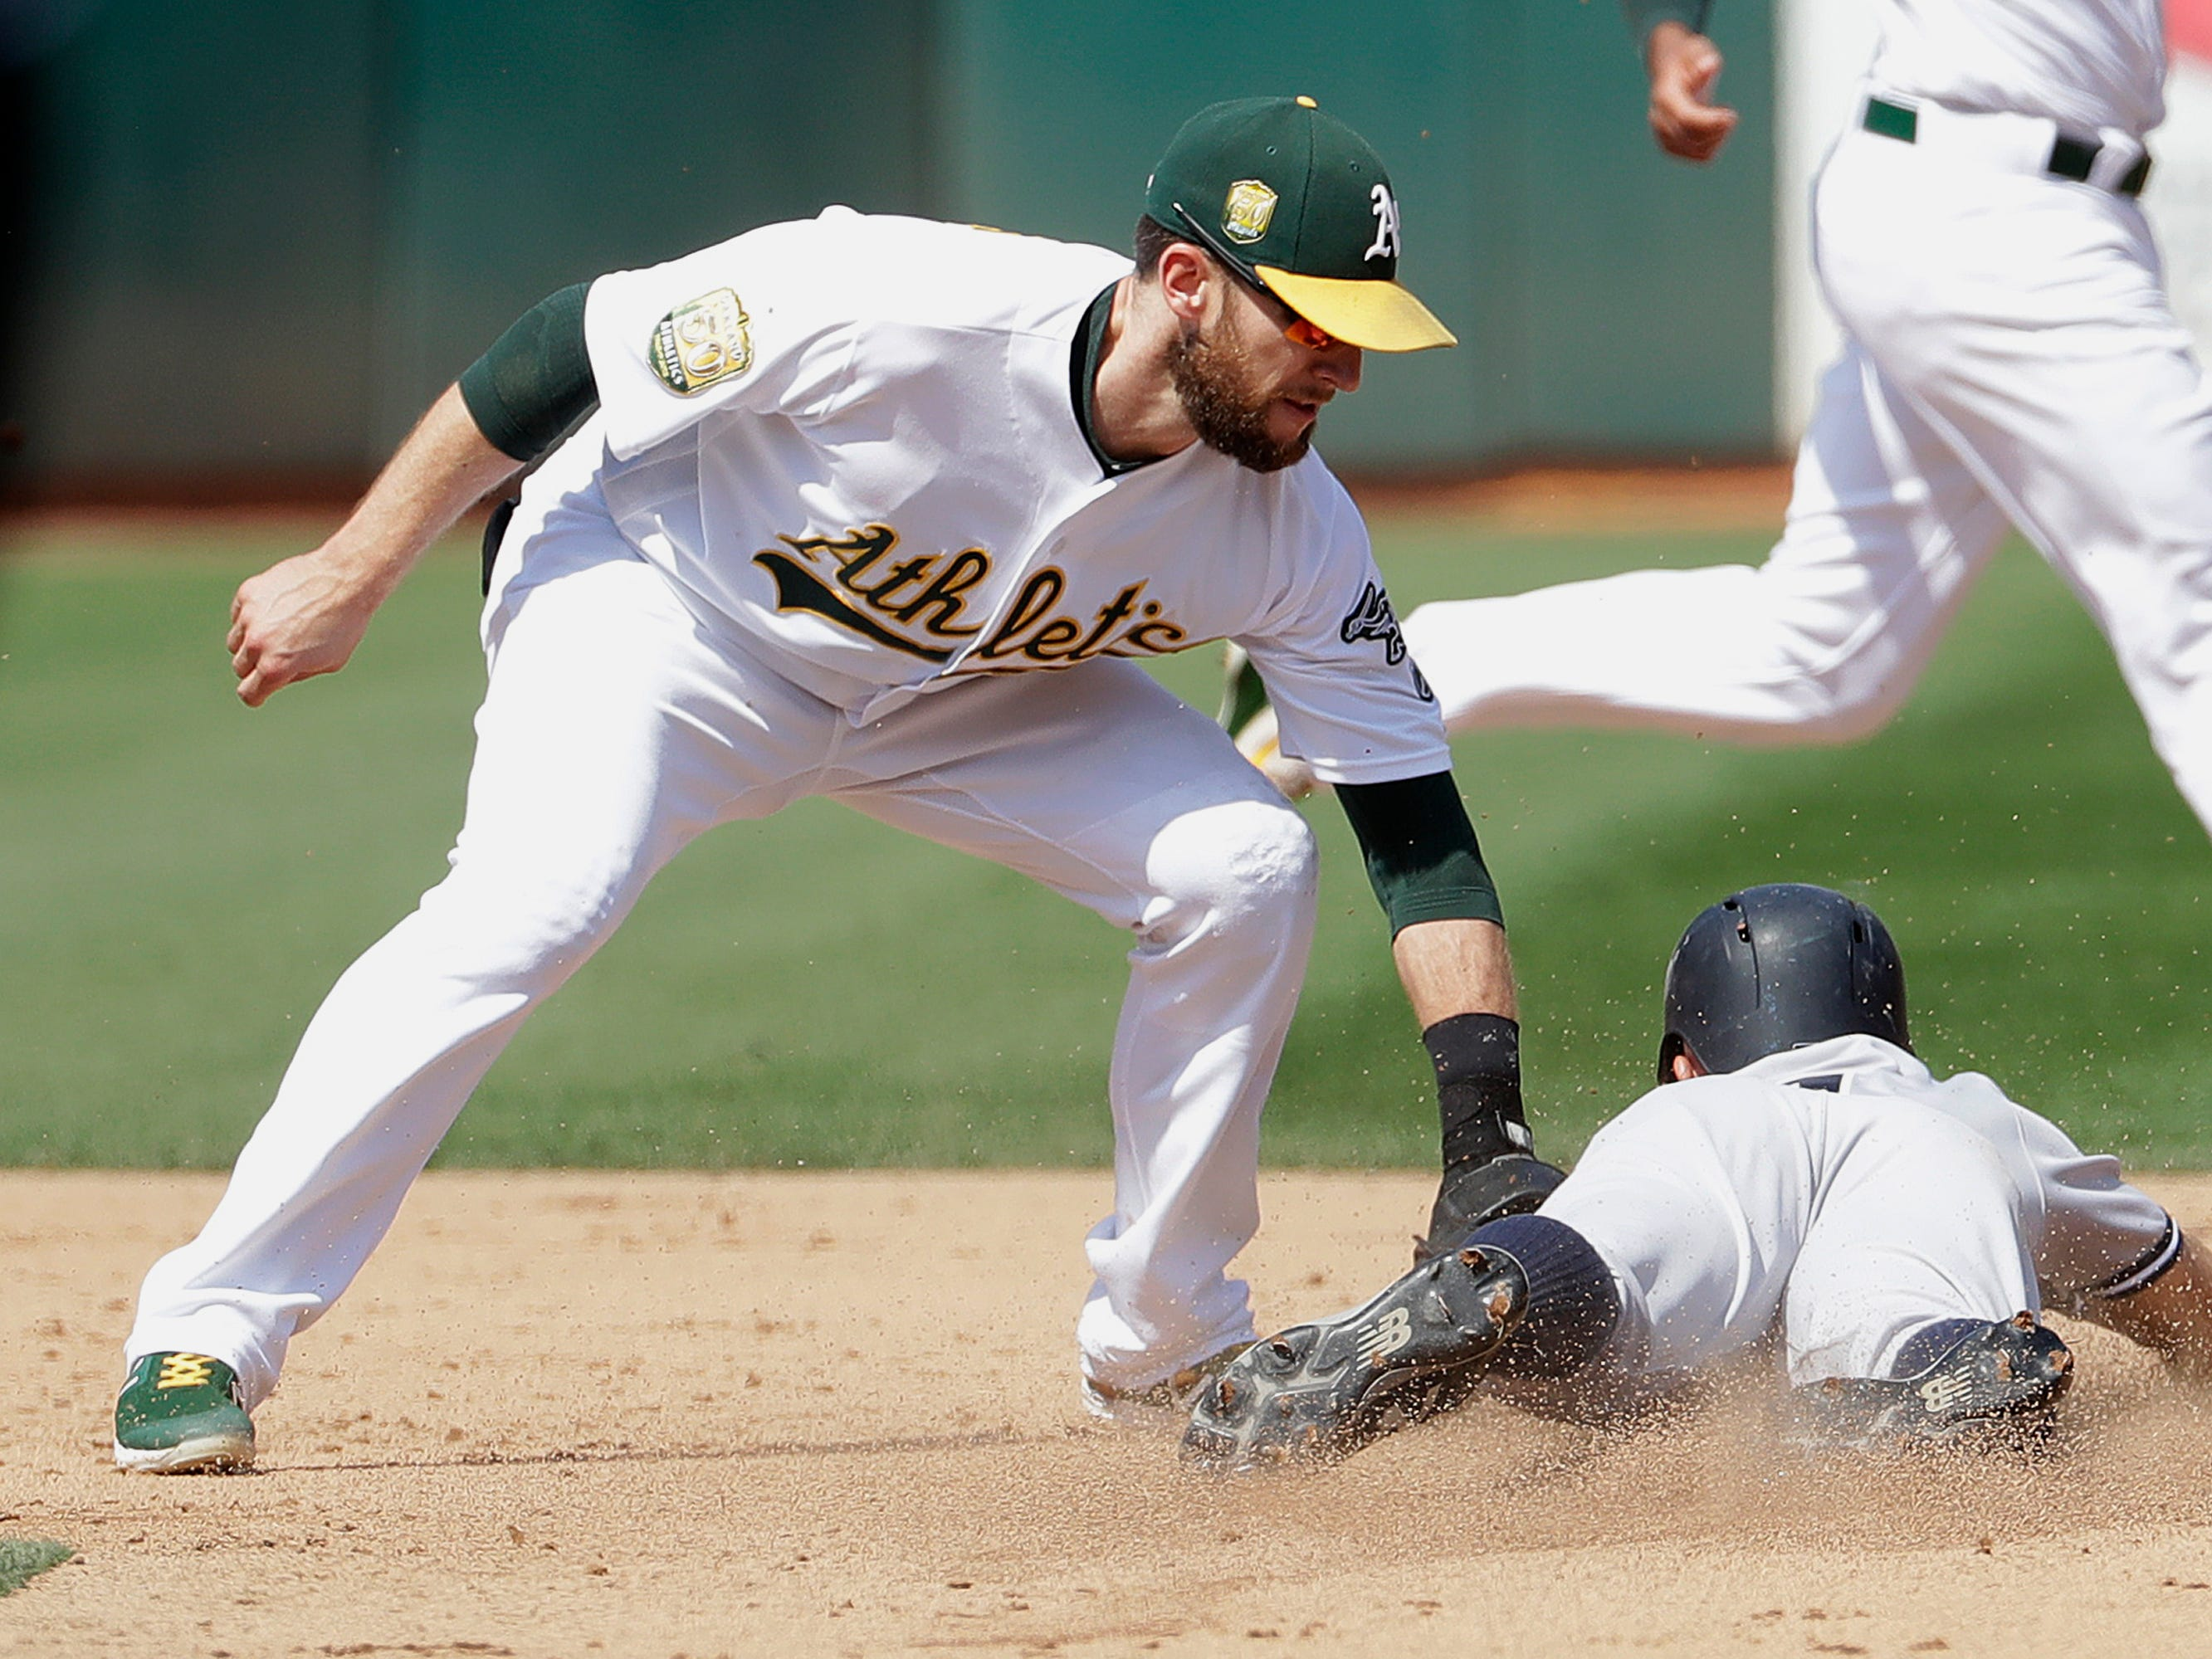 13. Jed Lowrie, 2B, 35: At age 34, the veteran infielder posted his best season yet, with personal-bests in homers (23) and RBIs (99). Few noticed, because he did it in Oakland. Prediction: A's, three years, $23 million